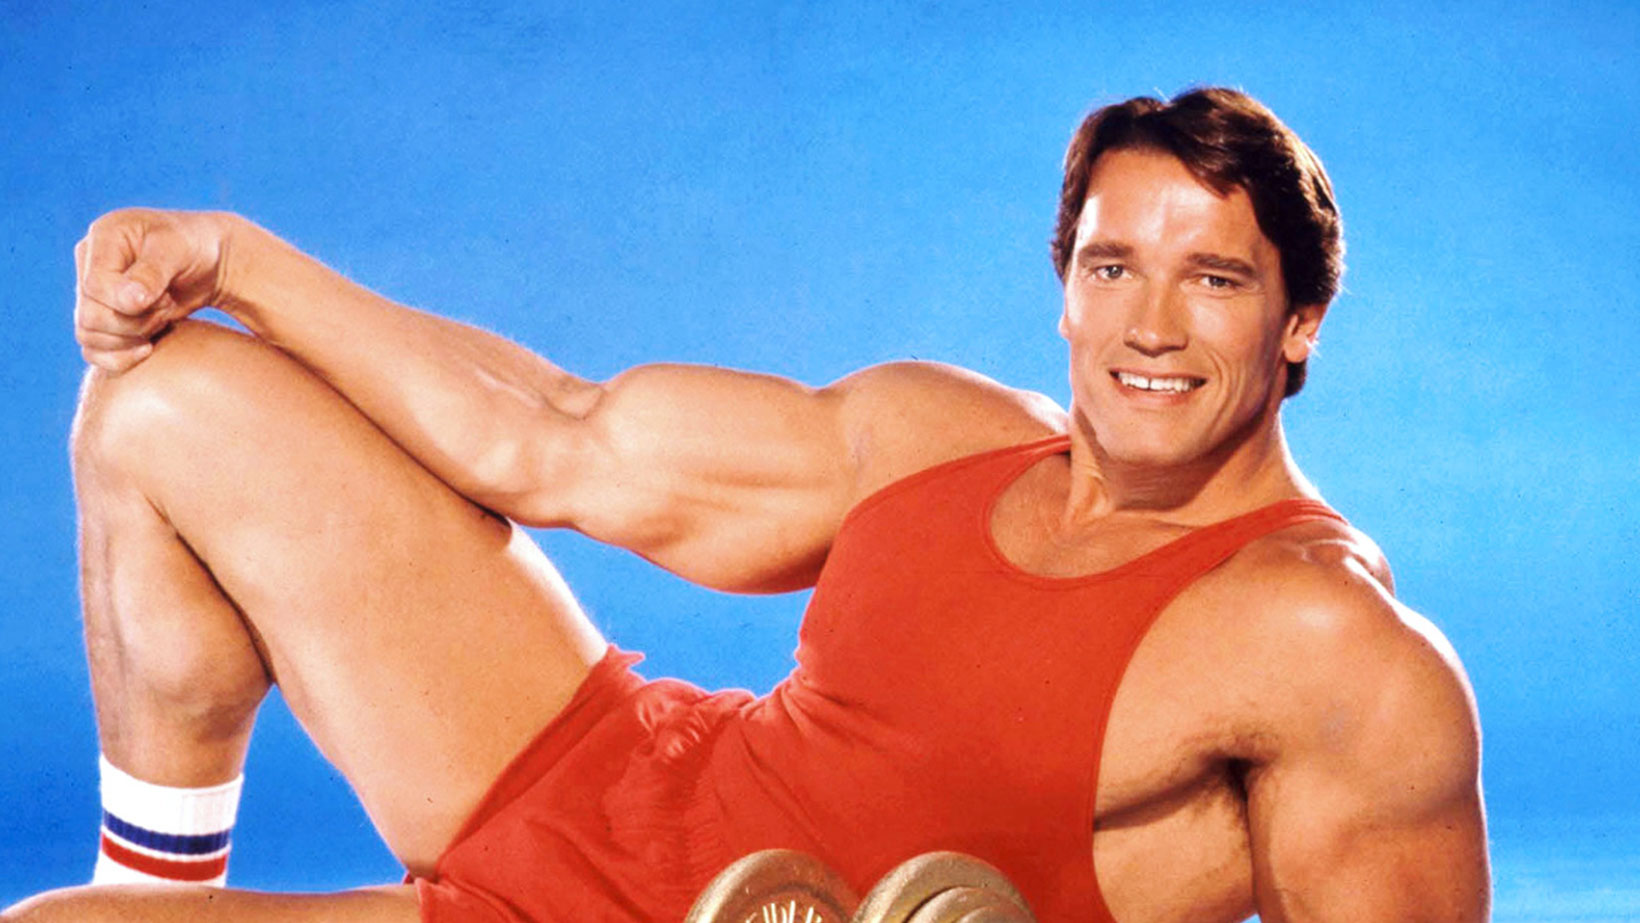 7 Reasons Why Fitness In The 1980's Was Awesome